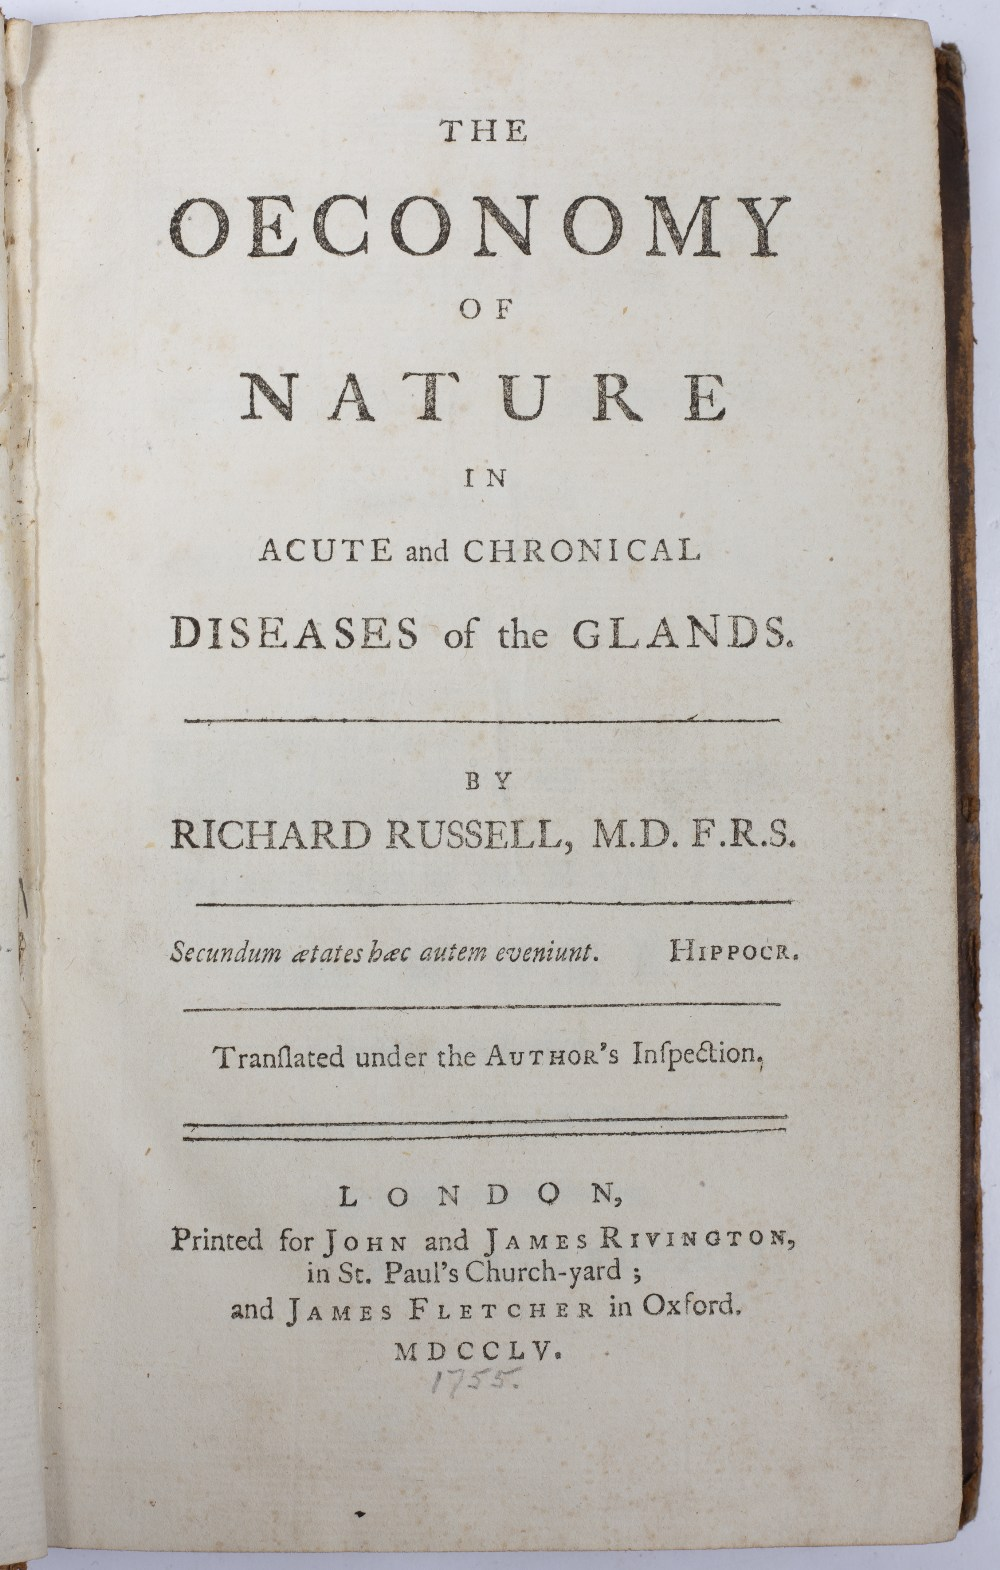 POTT, Percival, FRS and Surgeon at St. Bartholomew's Hospital. 'Some Few General Remarks on